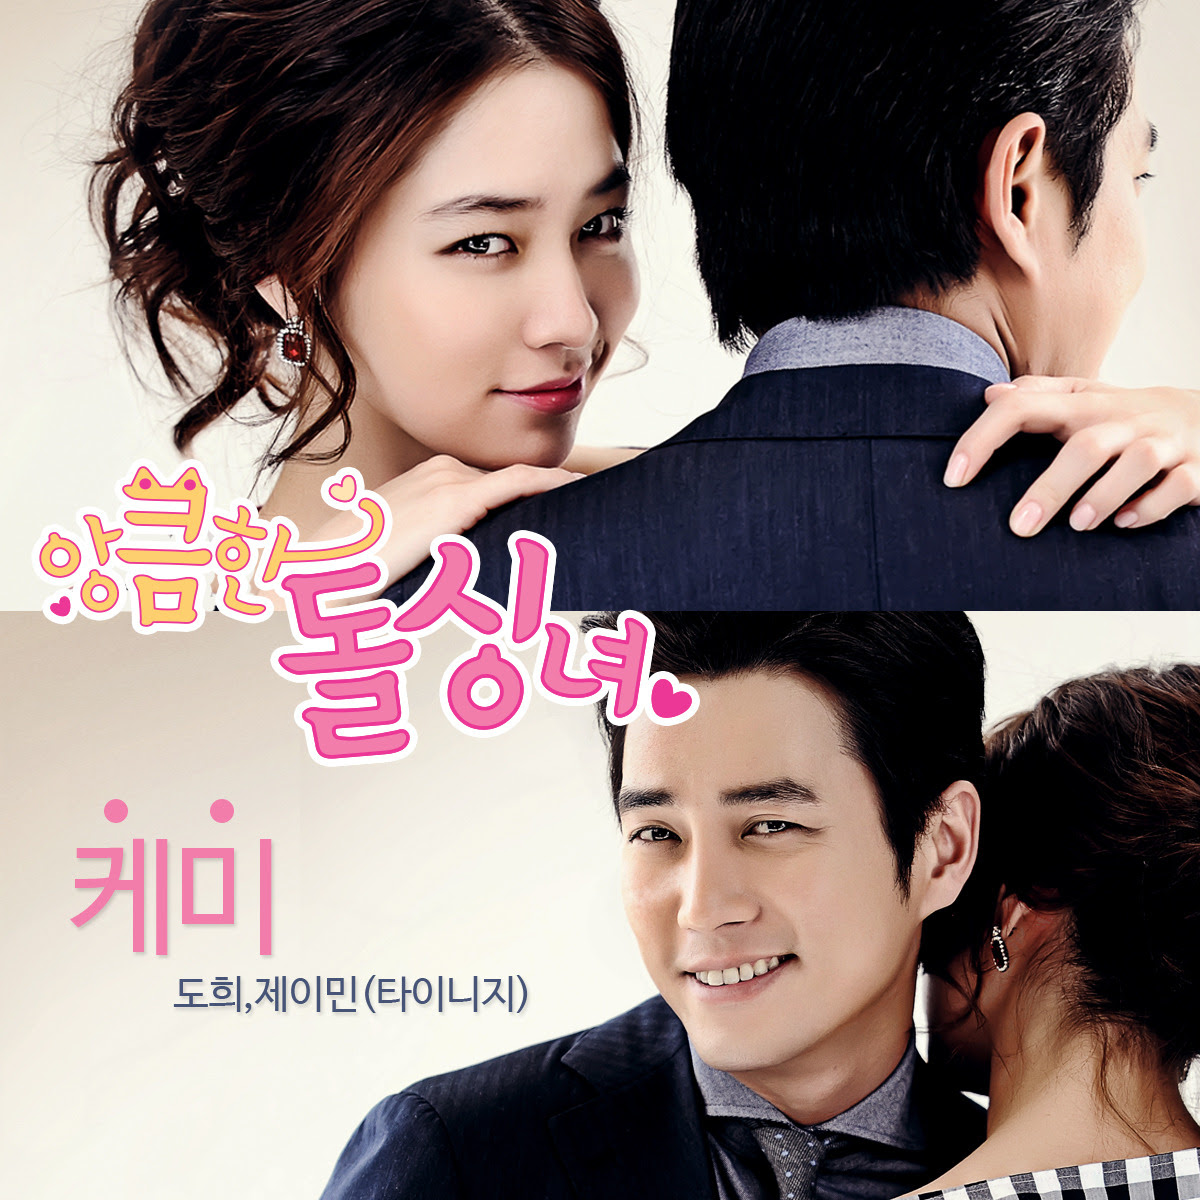 http://img4.wikia.nocookie.net/__cb20140312042203/drama/es/images/f/f7/Cunning_Single_Lady_OST_Part2.jpg